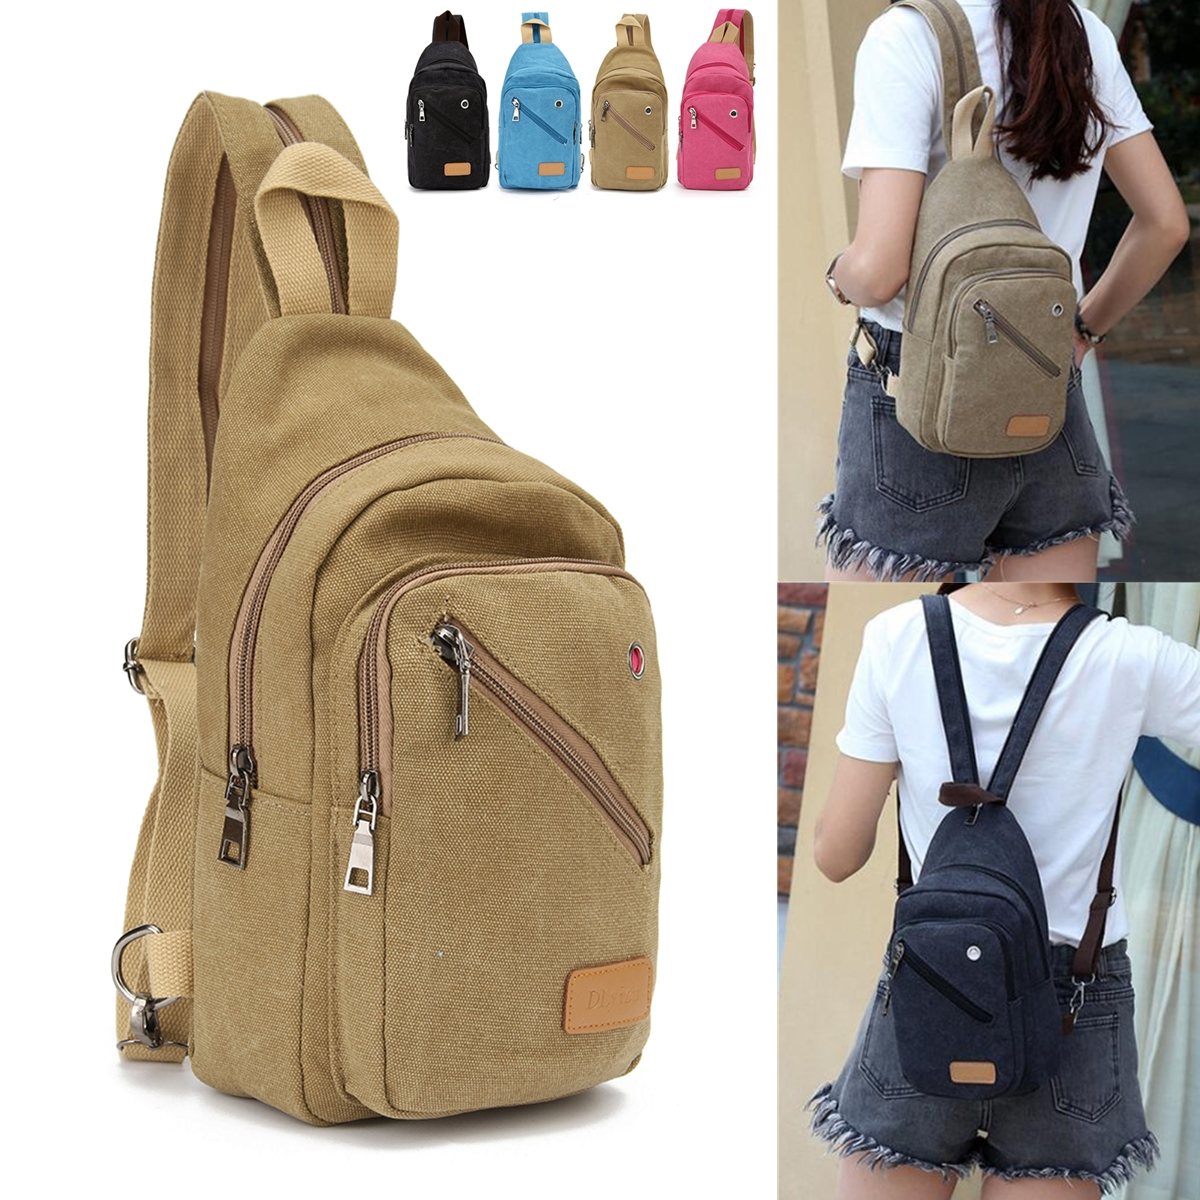 IPRee™ Outdoor Chest Bag Unisex Canvas Travel Cross Body Sling Messenger Shoulder Backpack